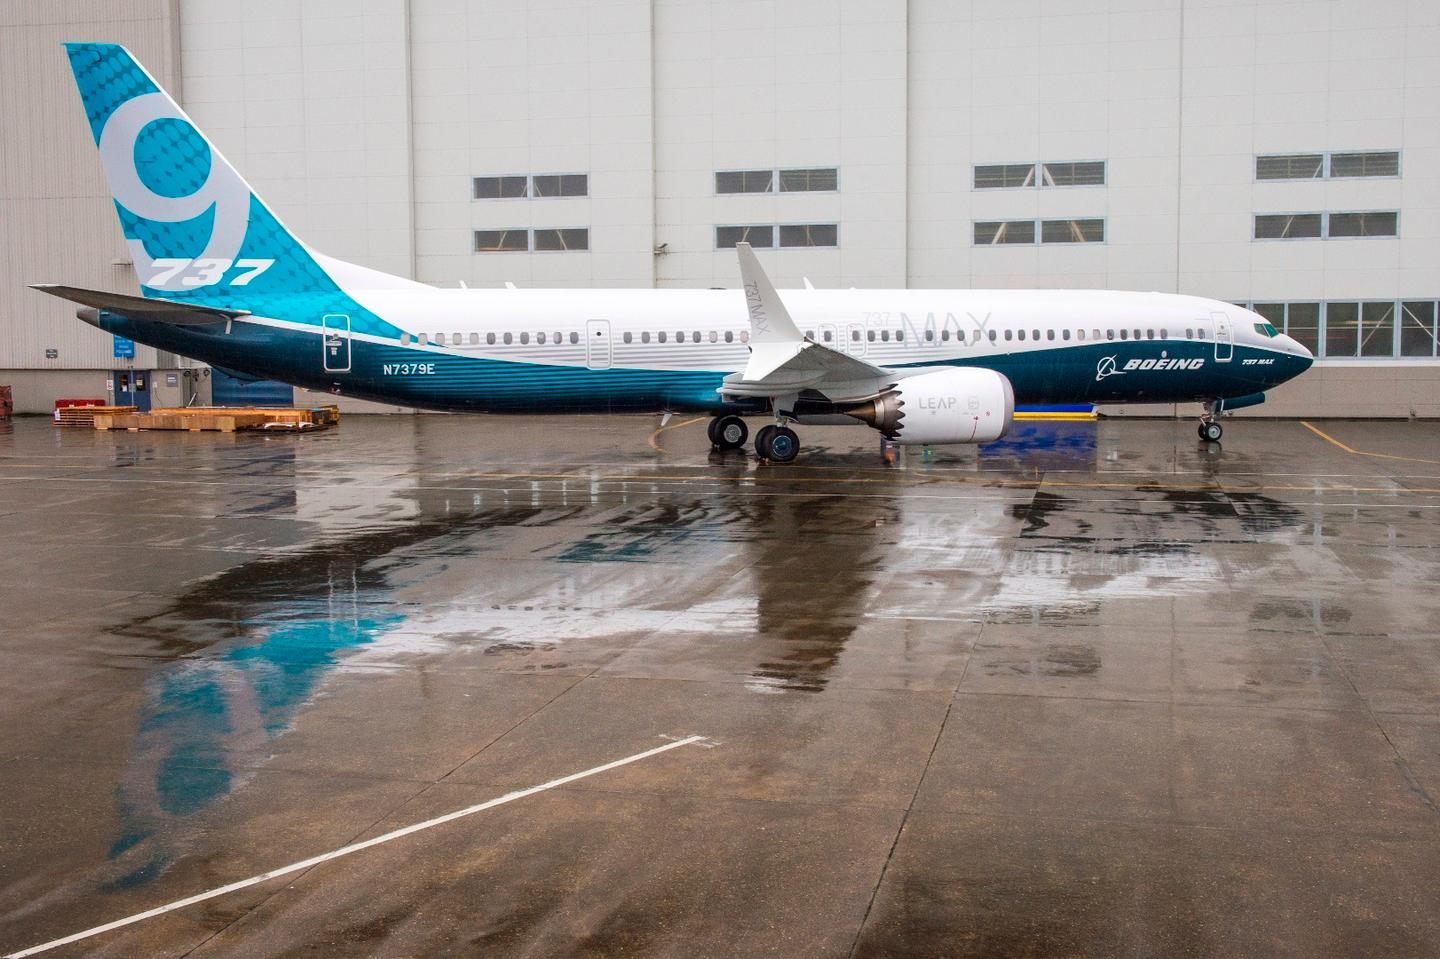 The Boeing 737 MAX 9 has a maximum capacity of 220 passengers